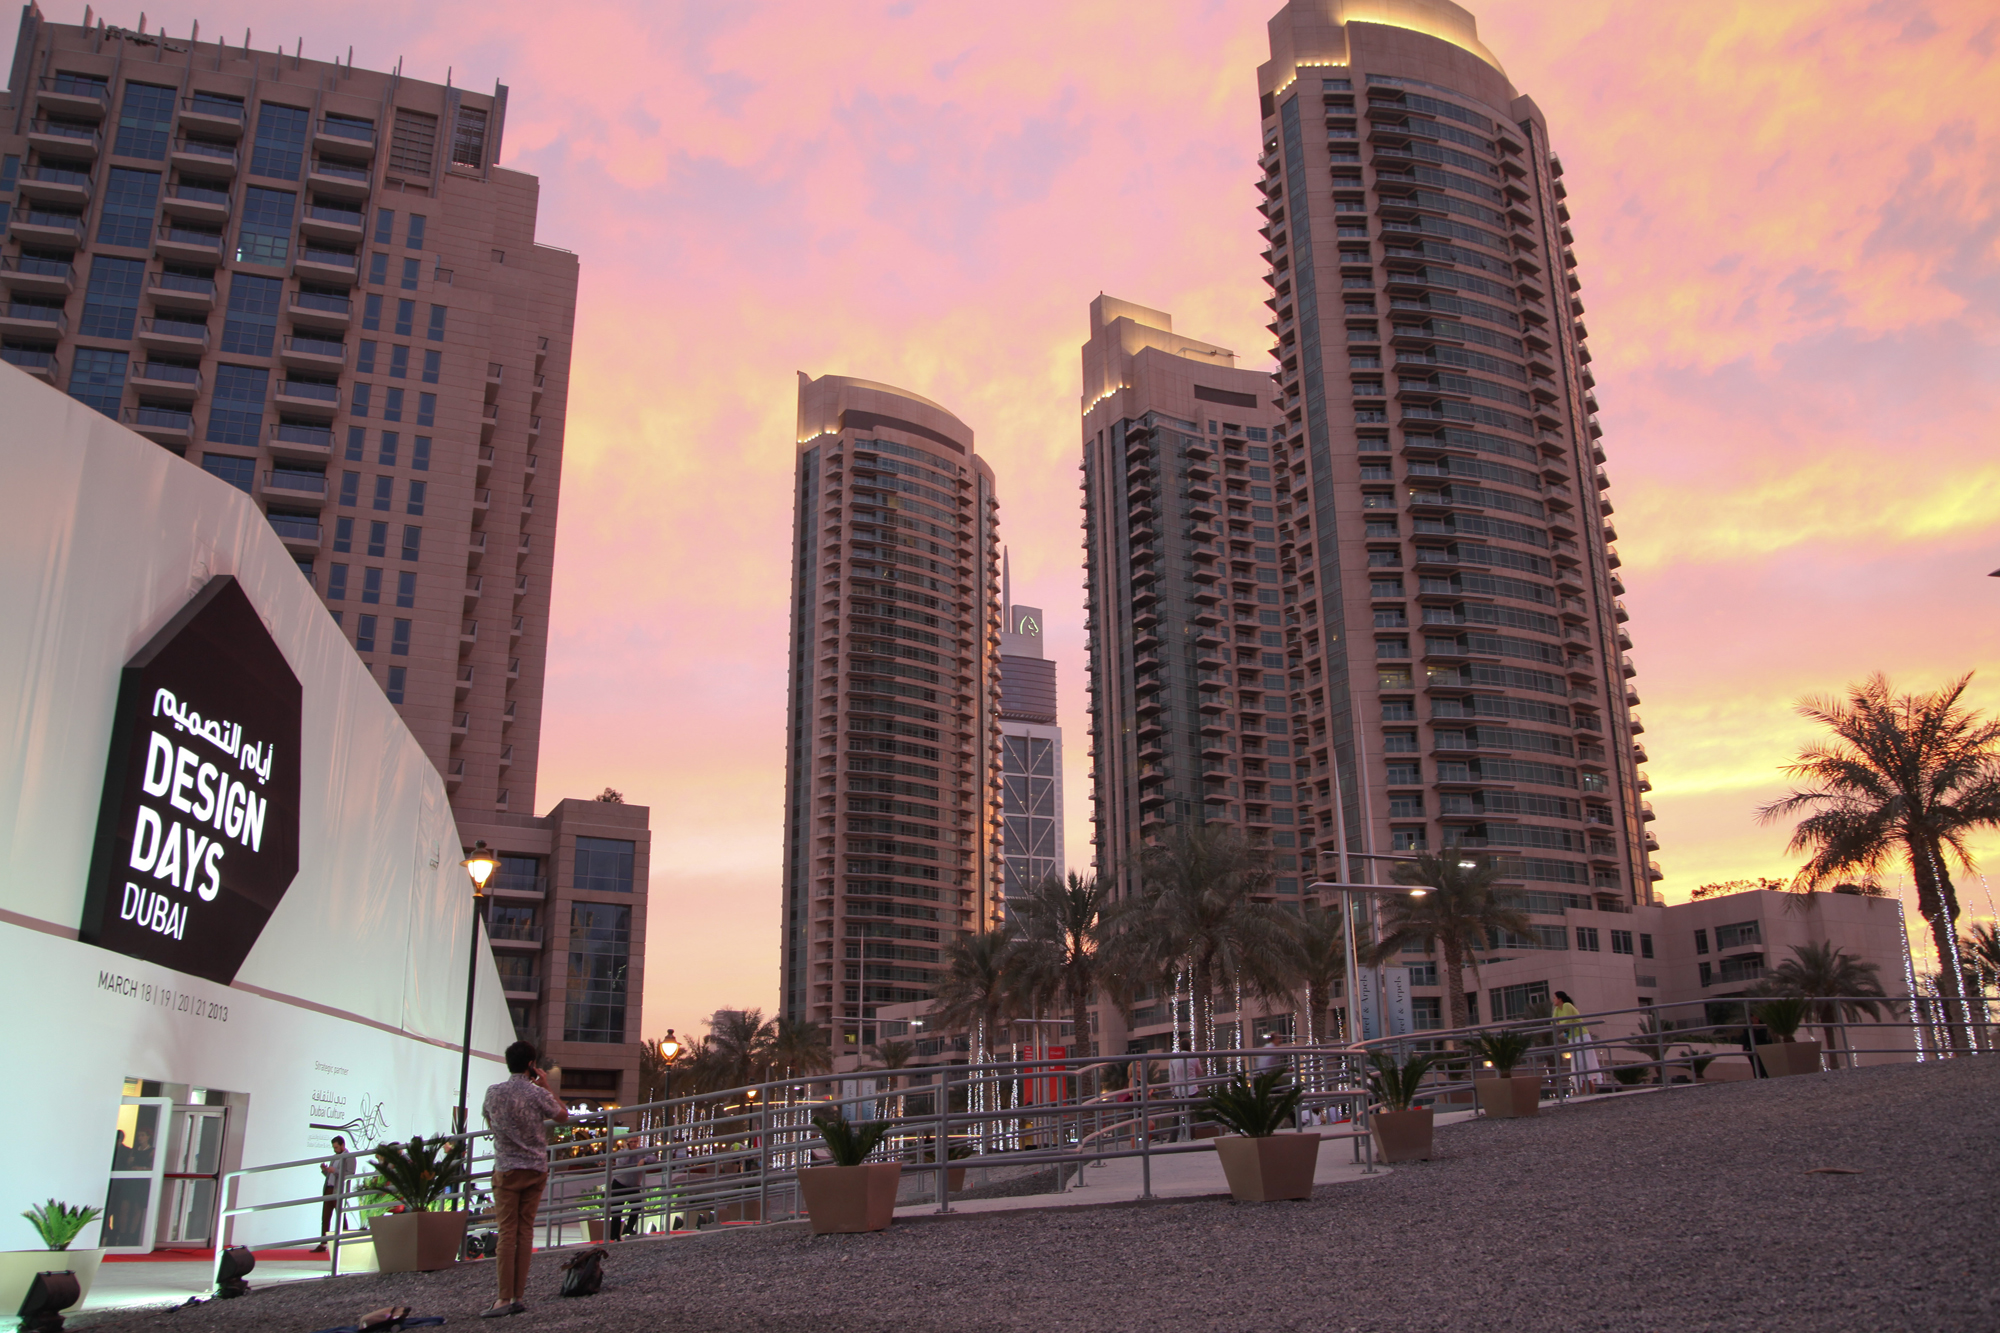 An outdoor view of the Design Days Dubai 2013 venue.